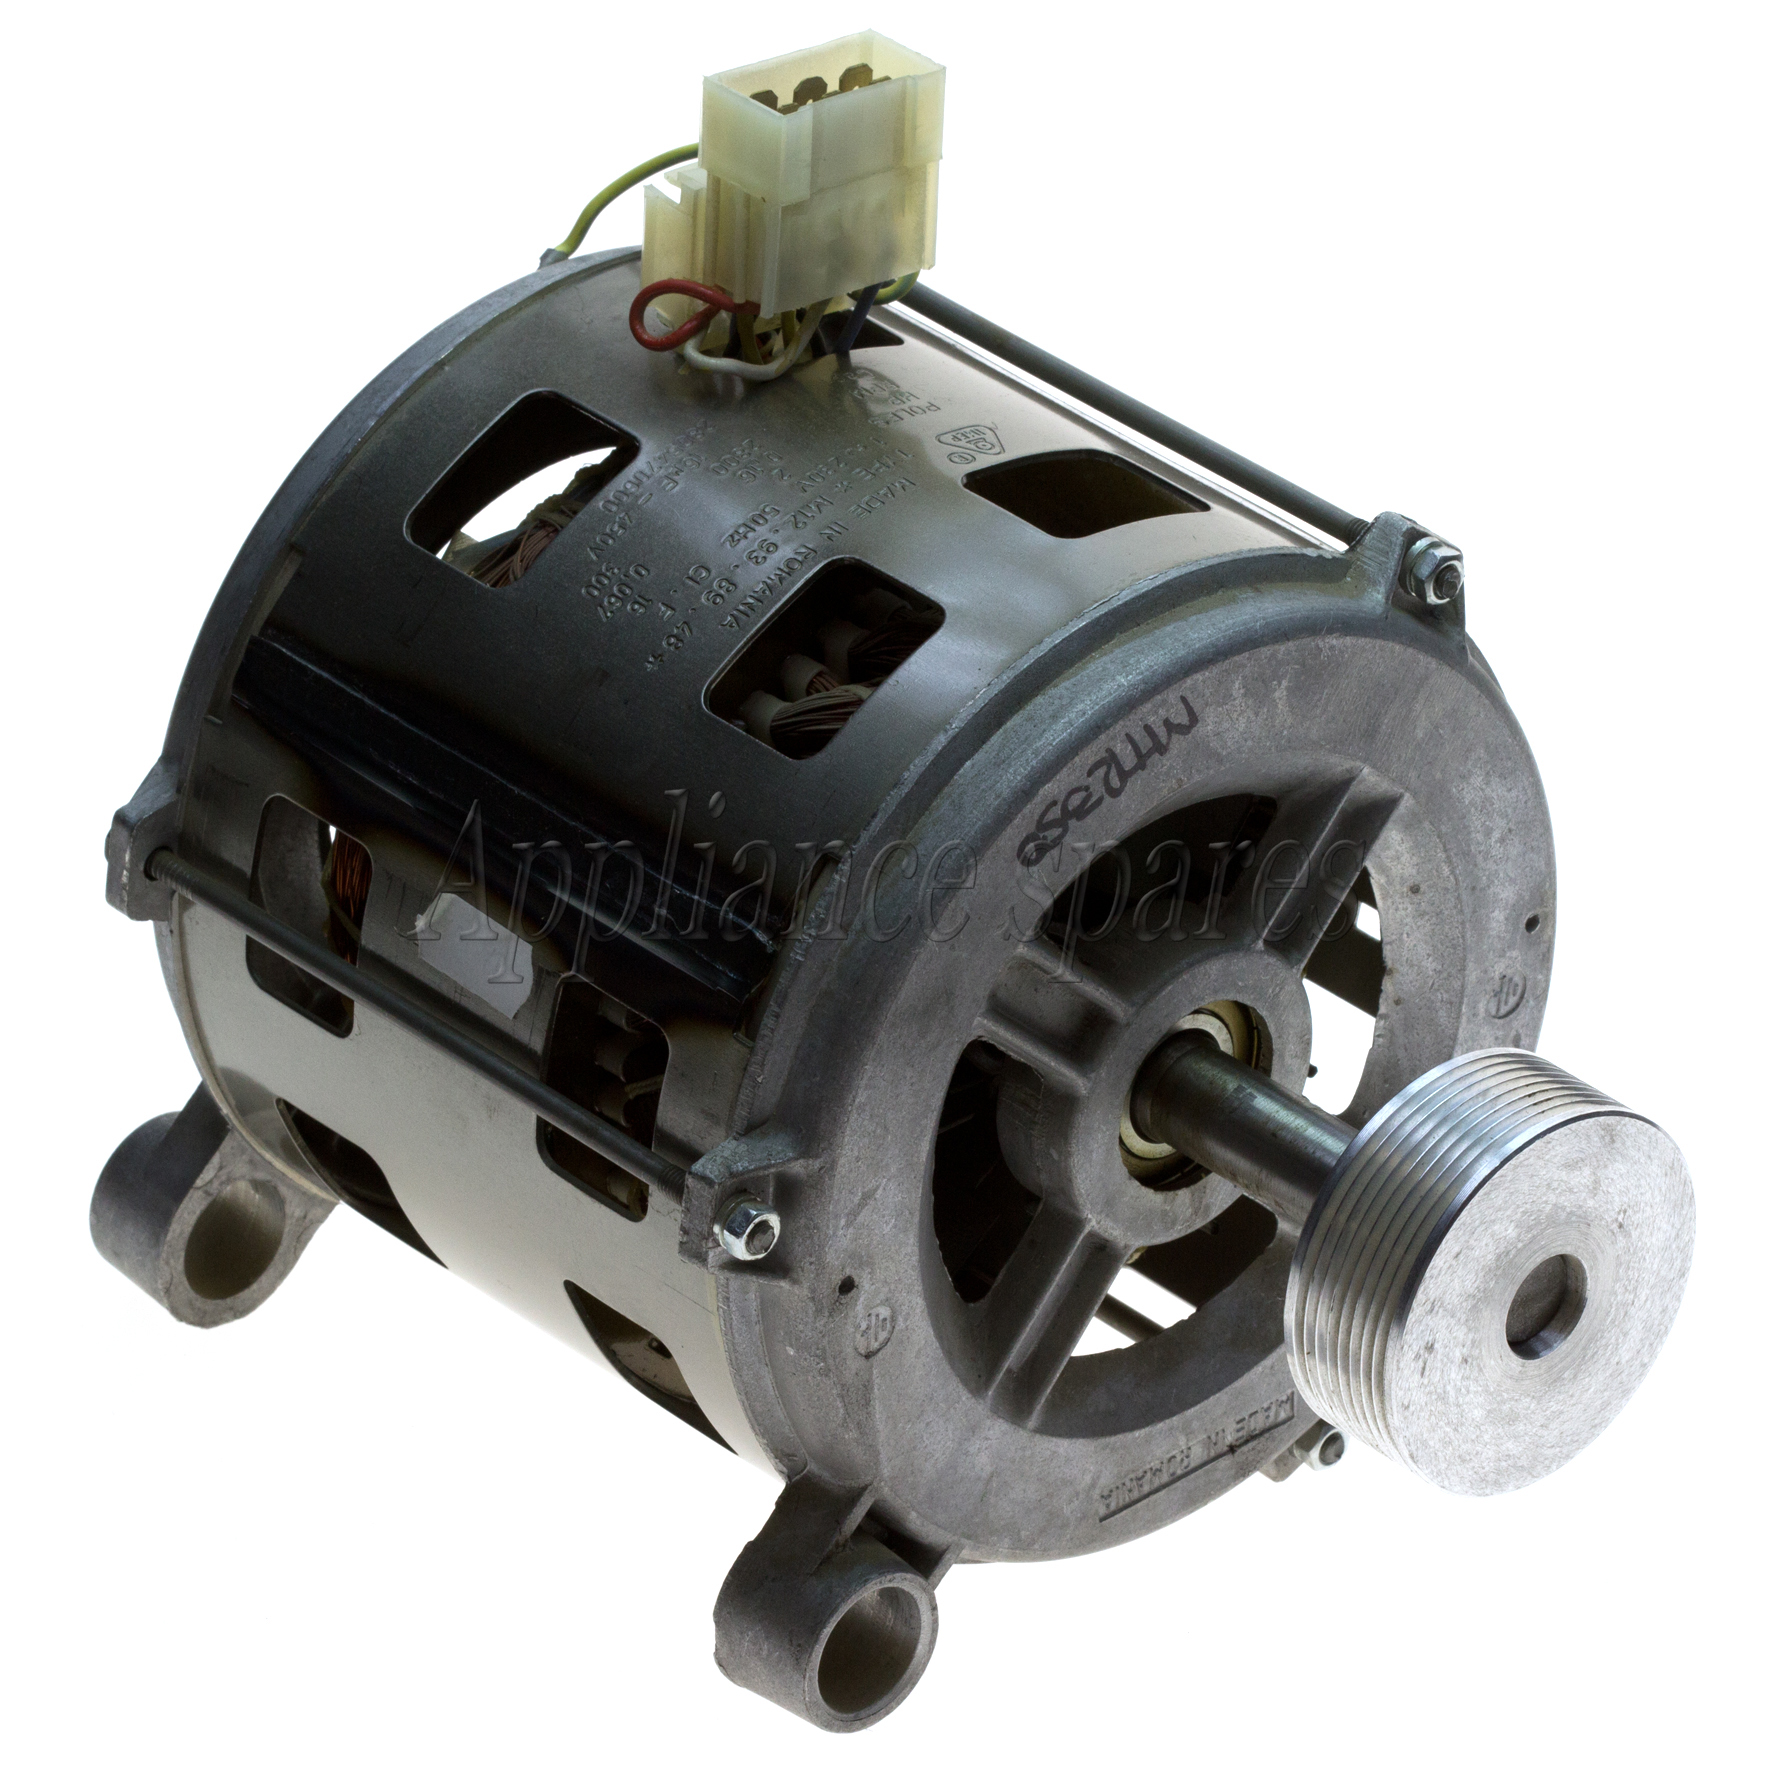 Maxresdefault in addition  further Wpl Direct Drive Washer Guts together with Hqdefault in addition Dd A B D F E Ec B. on how to wire a washing machine motor